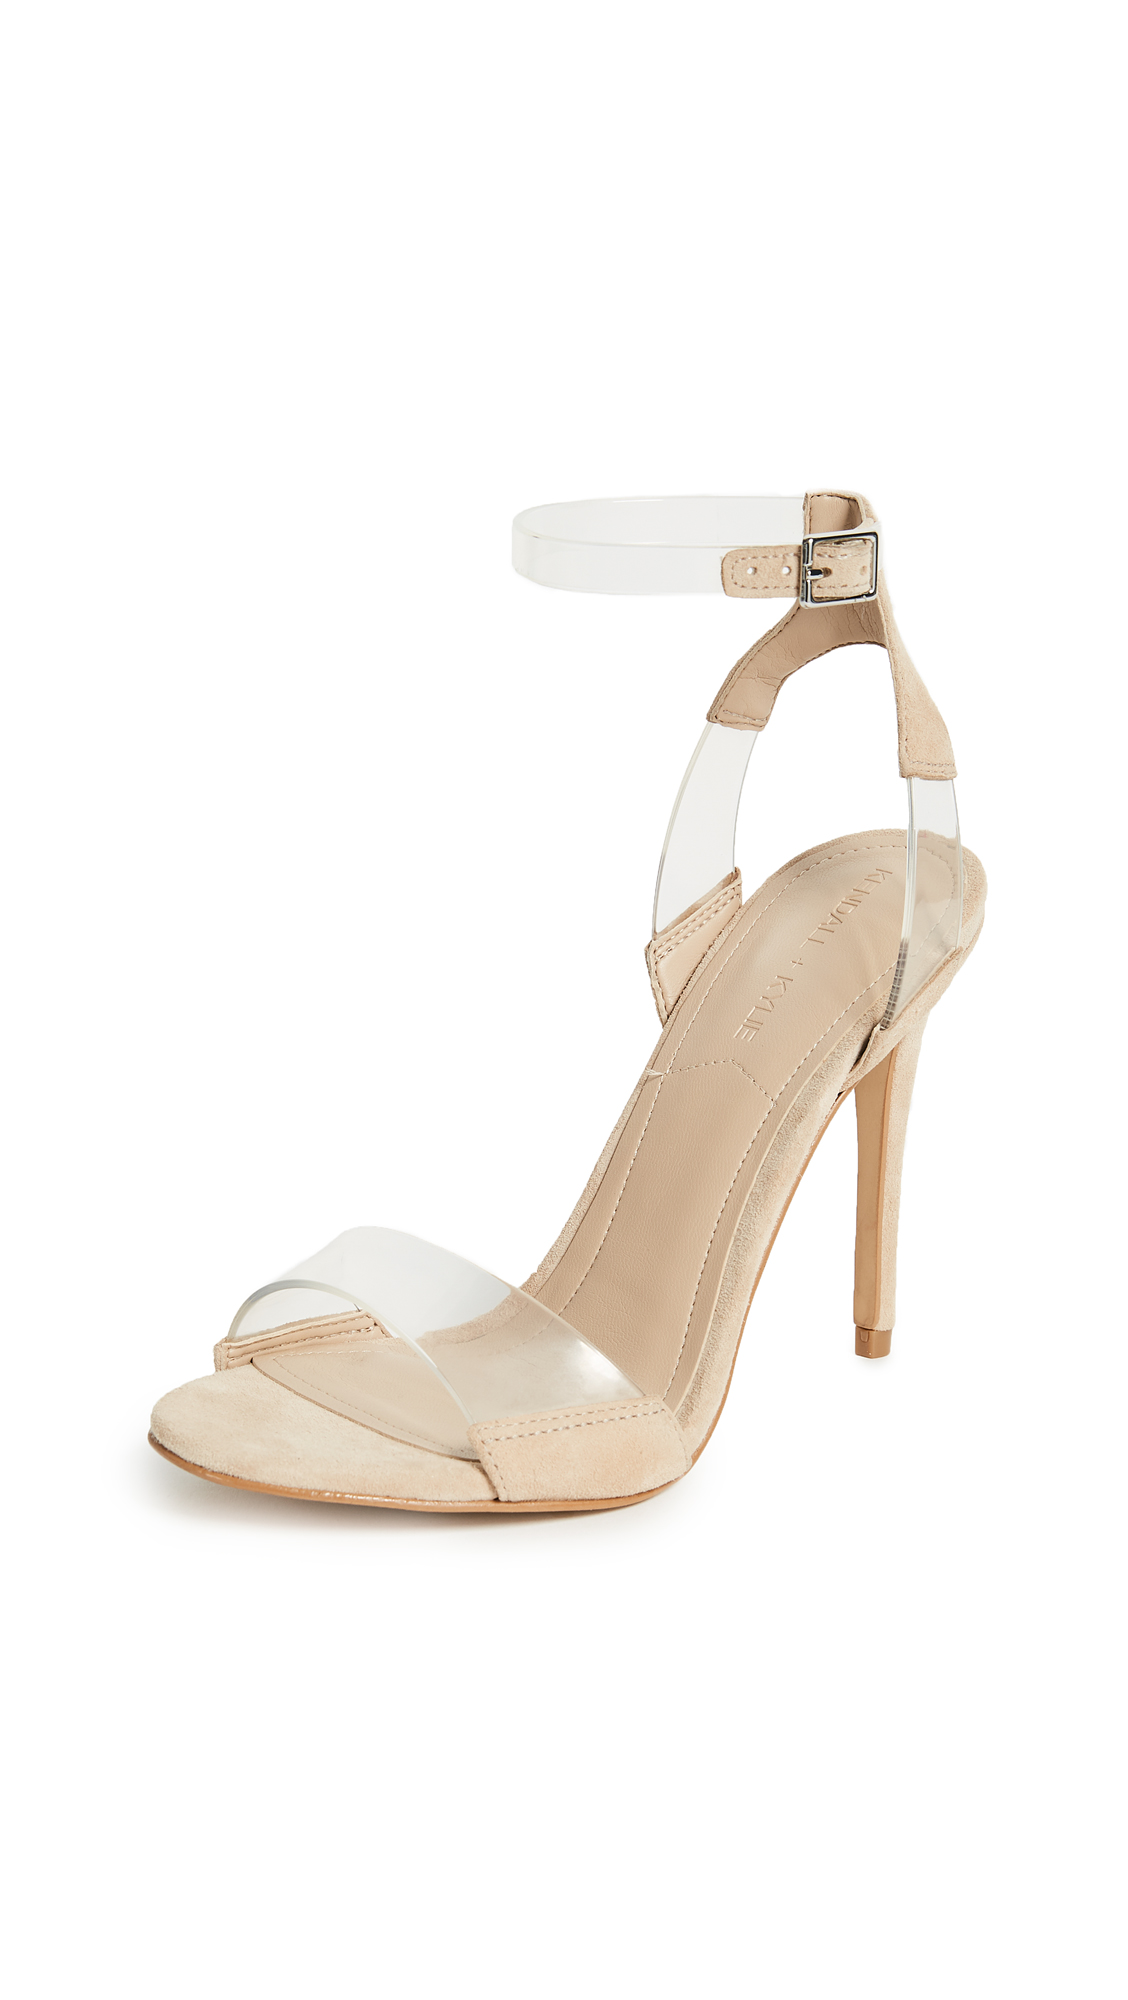 KENDALL + KYLIE Enya Ankle Strap Sandals - Clear/Nude